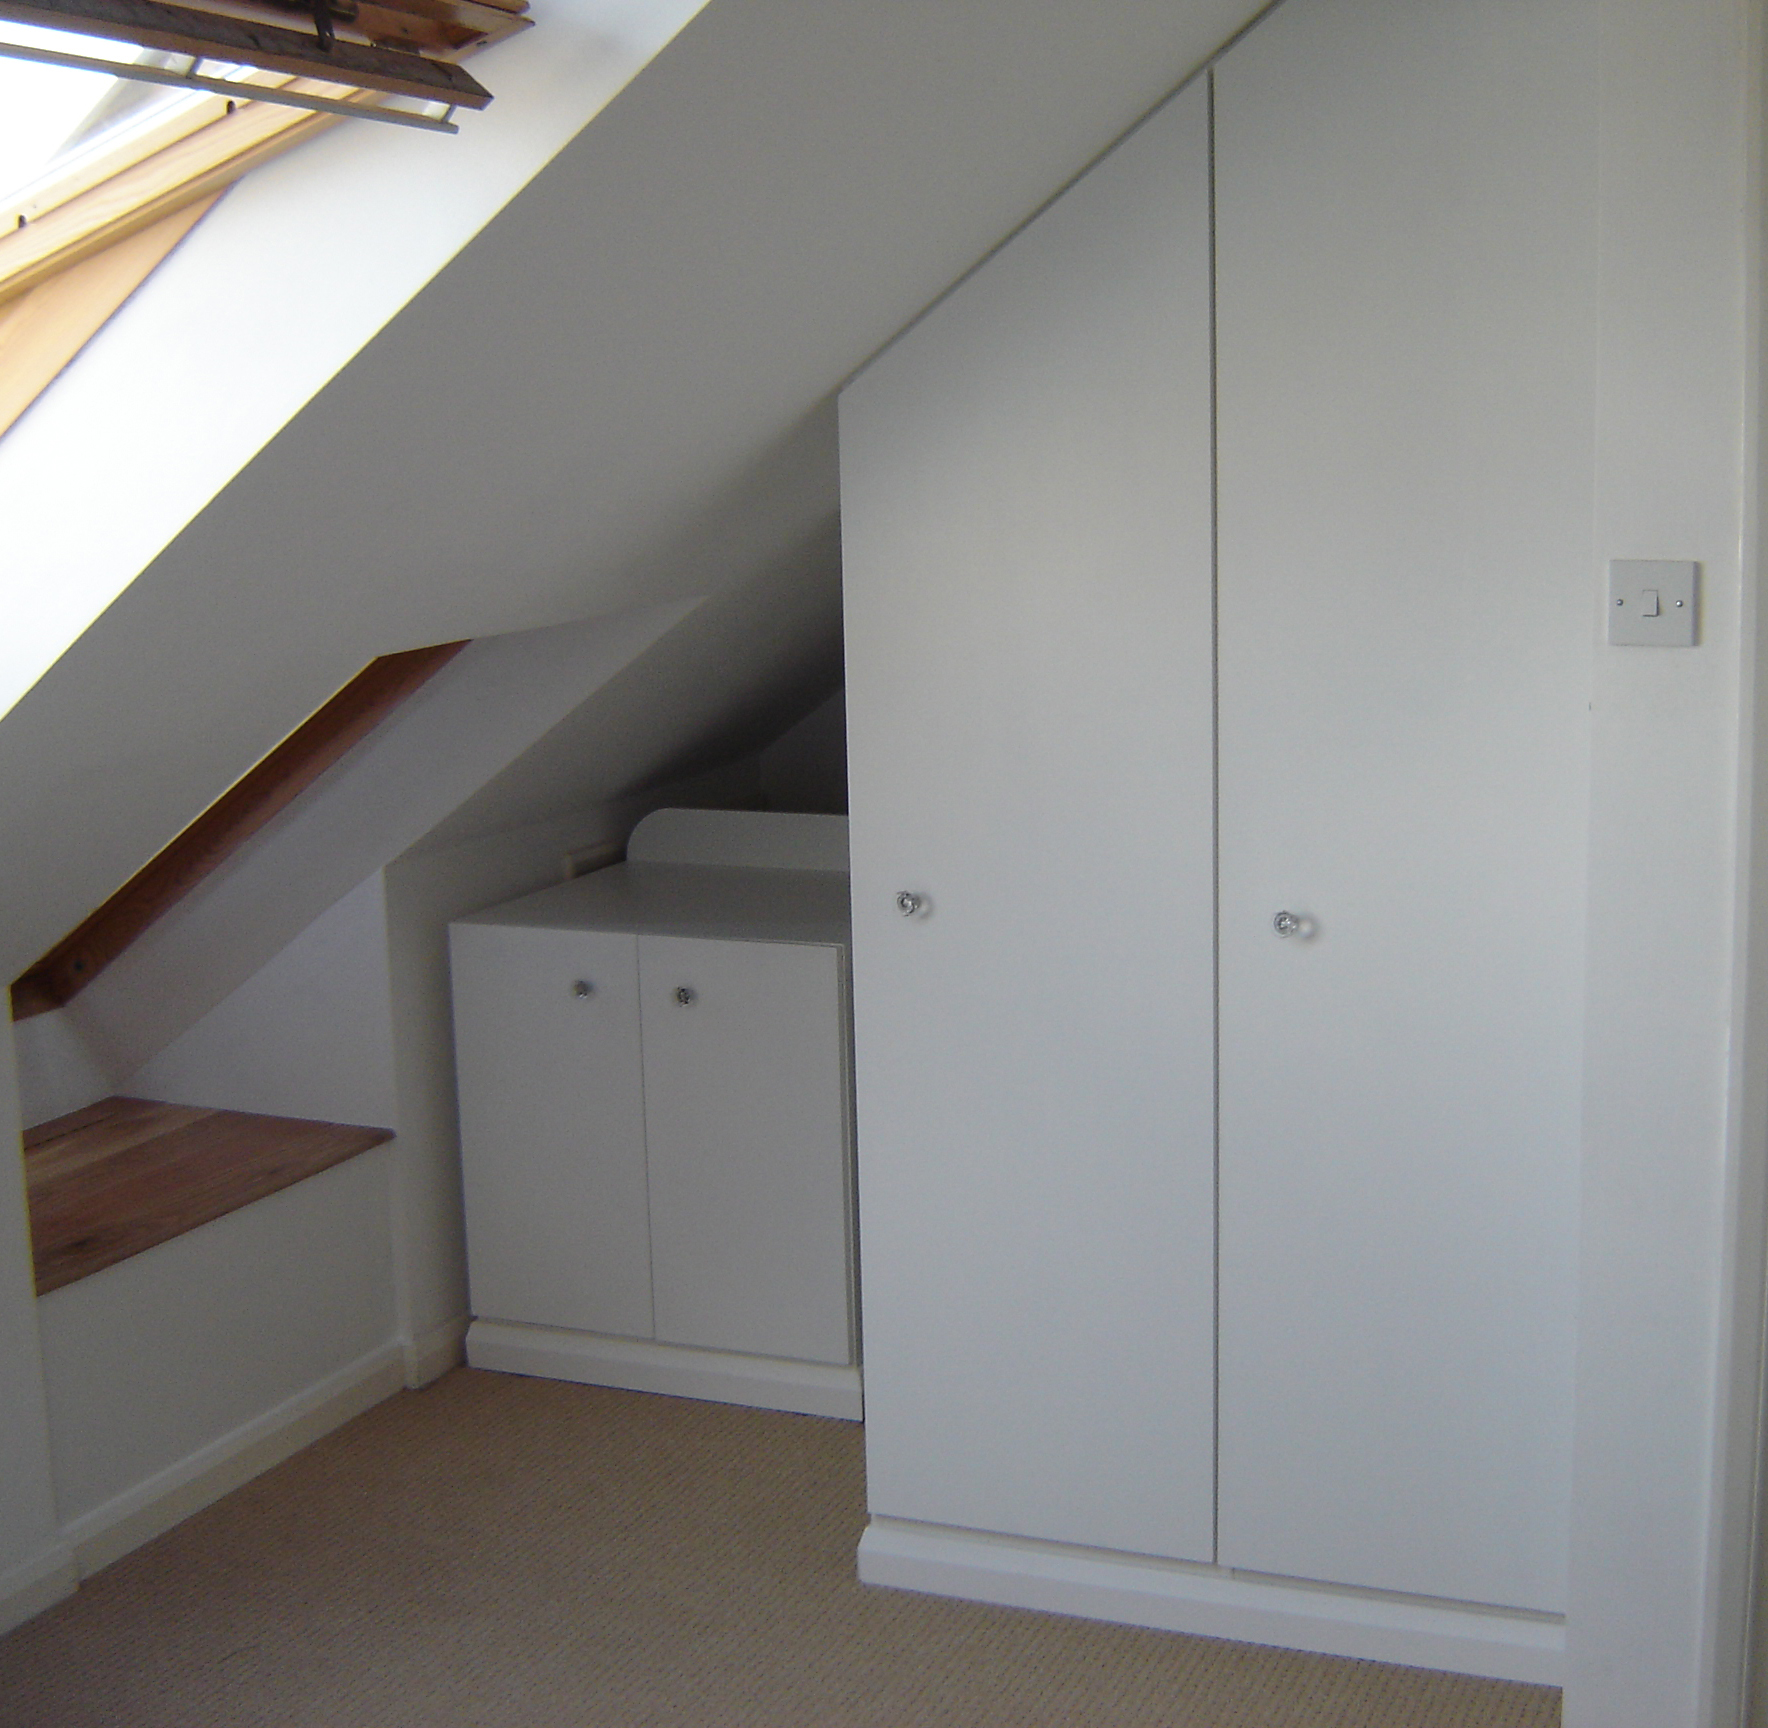 Wheeled cabinet & fitted wardrobe